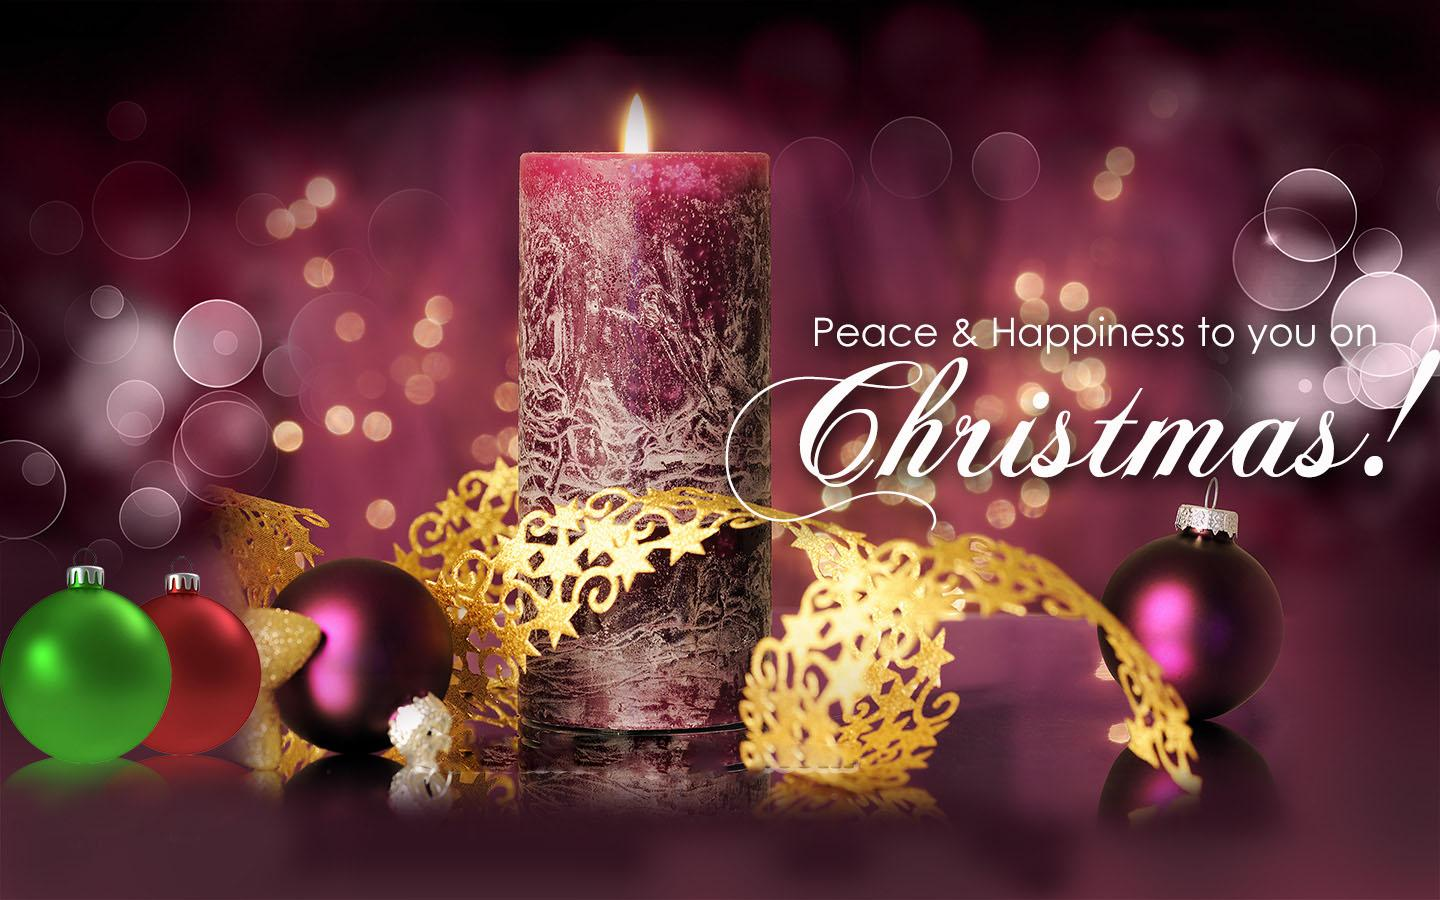 Christmas Wallpaper Free - Android Apps on Google Play